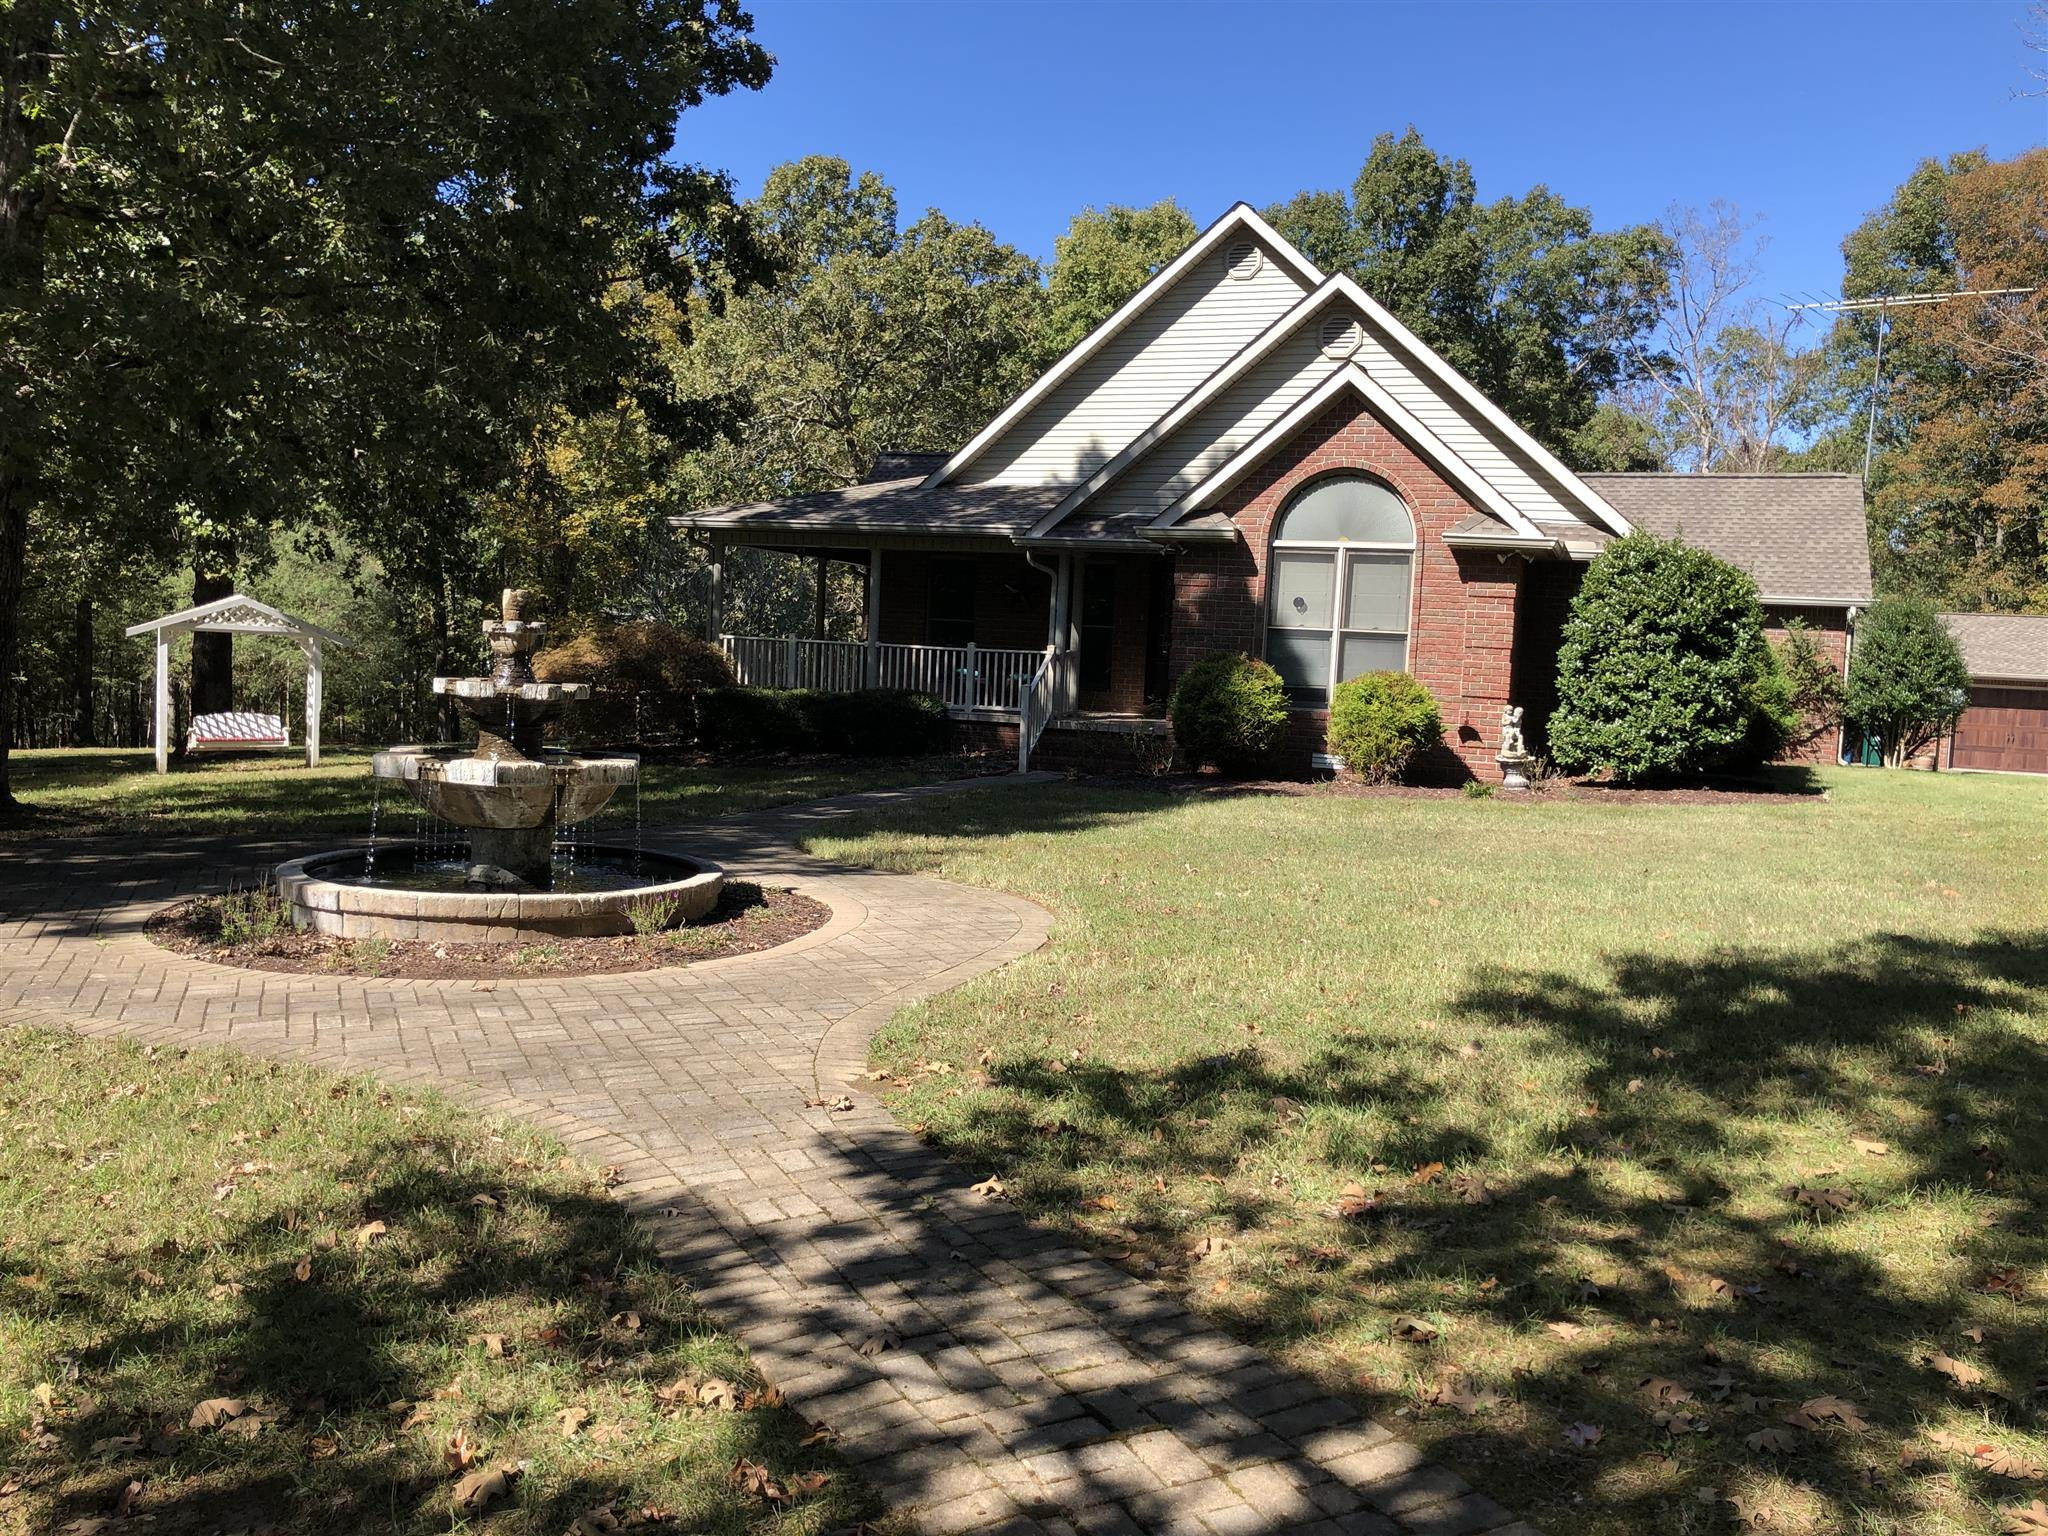 103 Post Rd, Waverly, TN 37185 - Waverly, TN real estate listing